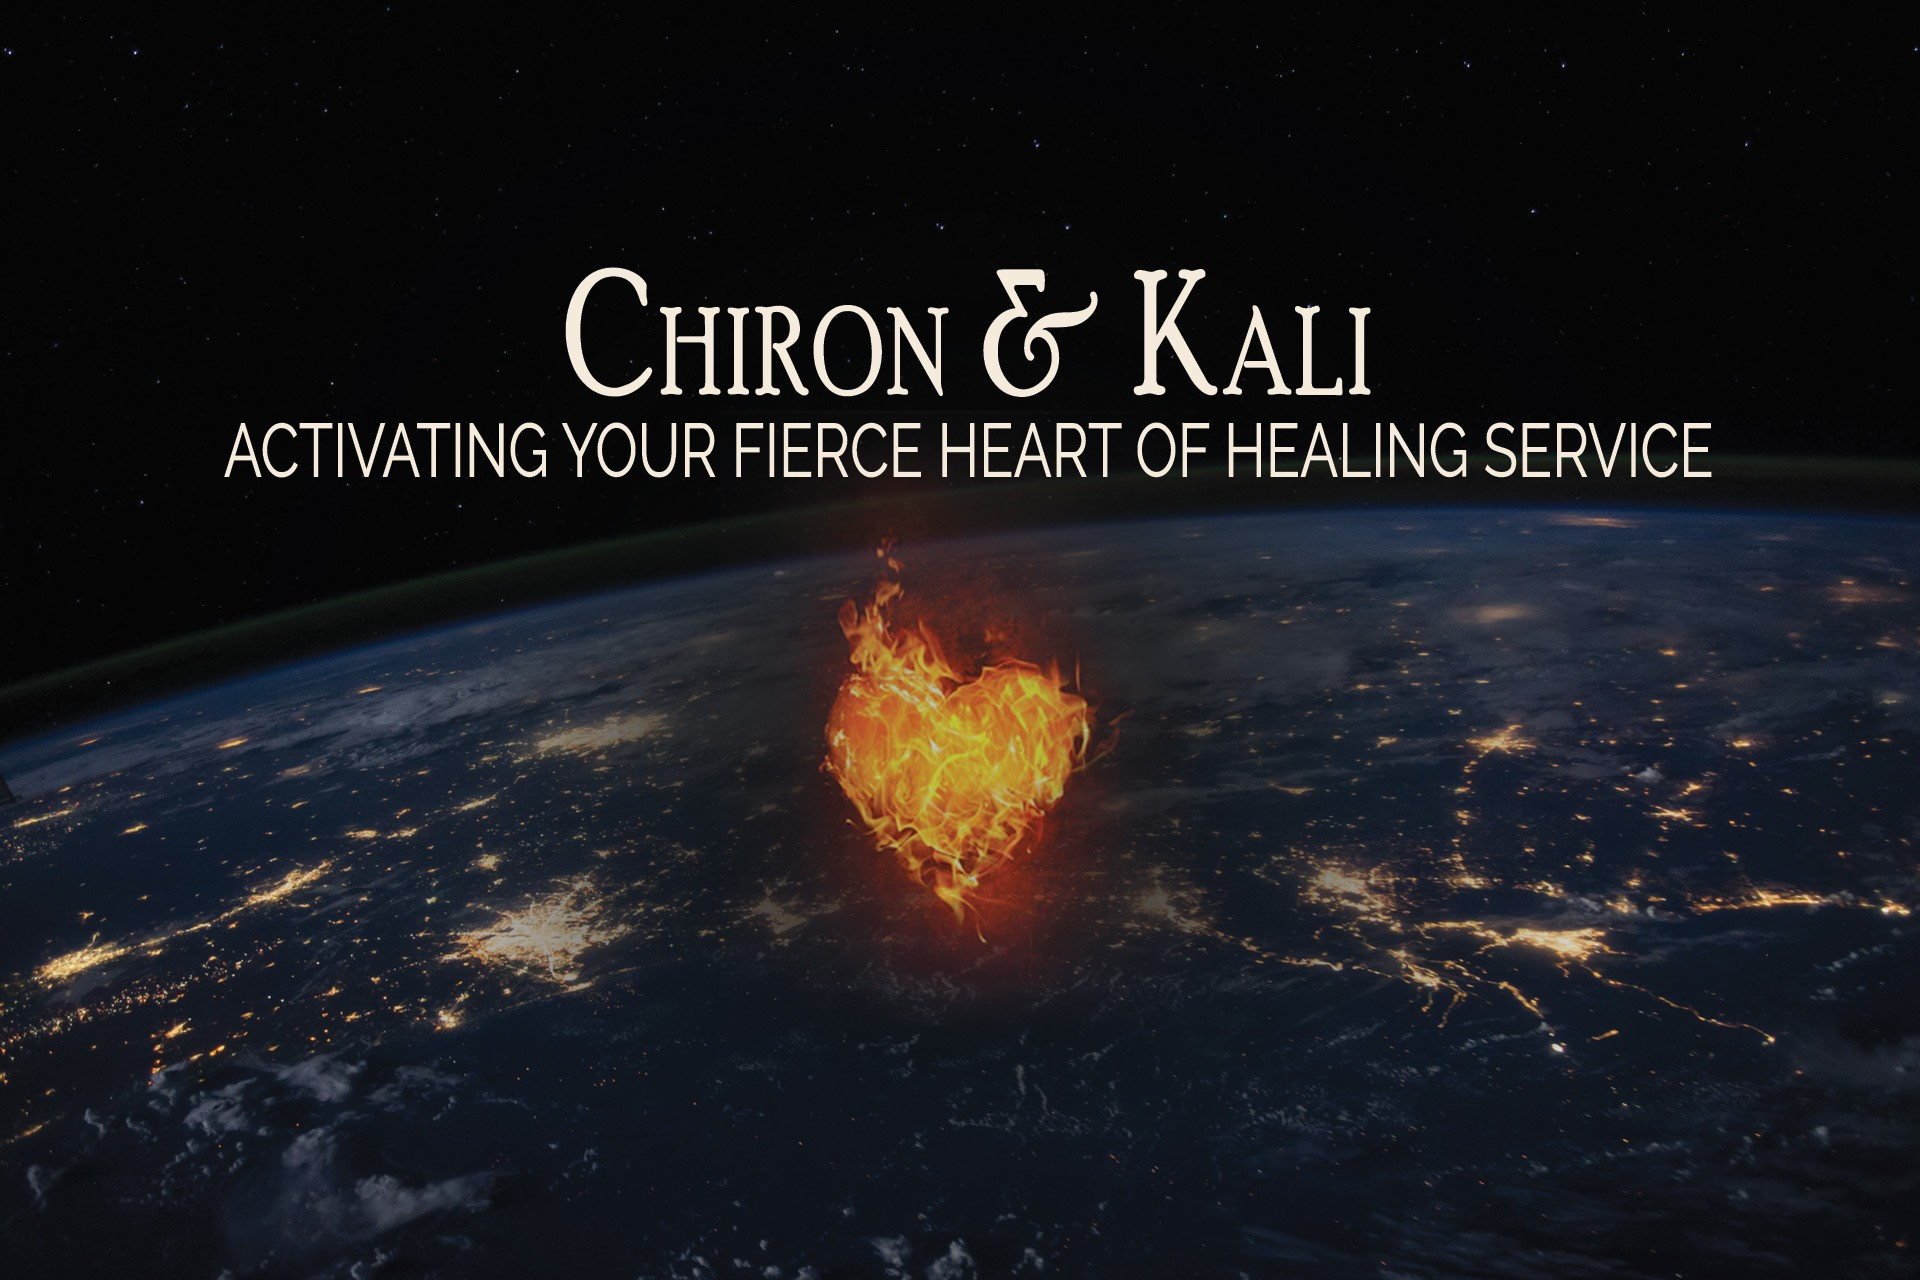 Activating Your Fierce Heart of Healing Service ~ Chiron & Kali